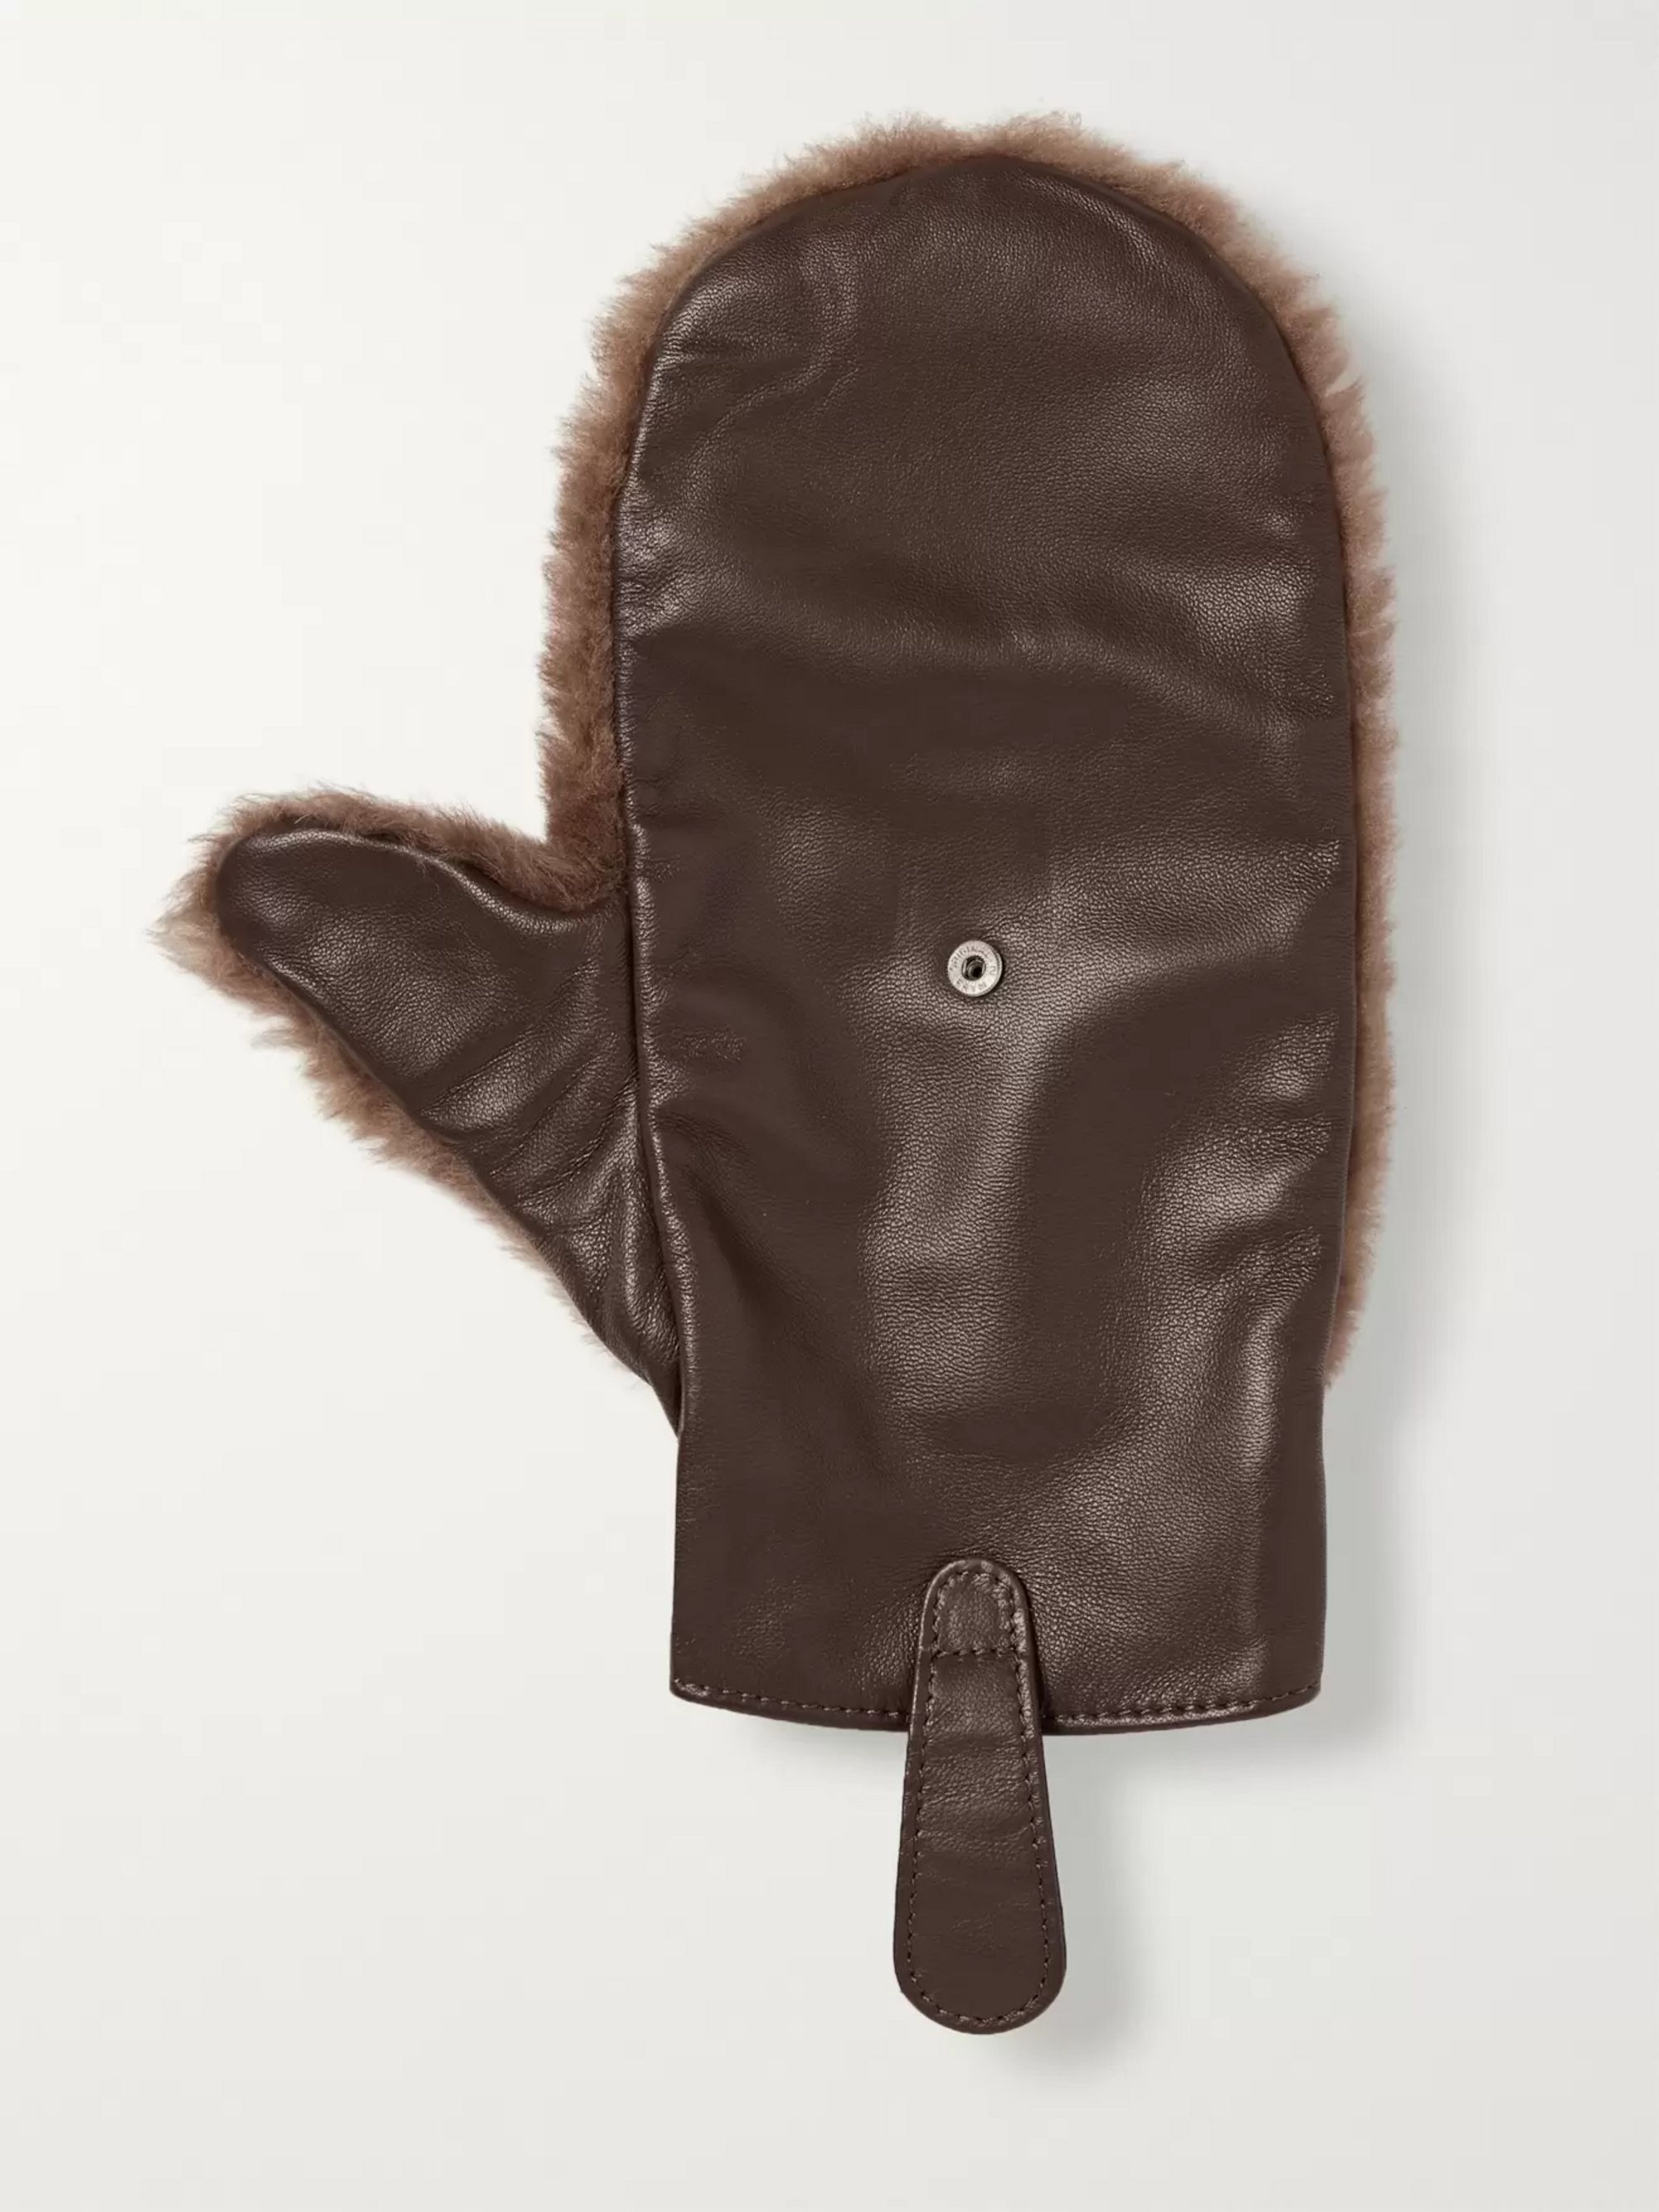 Lorenzi Milano Shearling and Leather Shoeshine Mitt